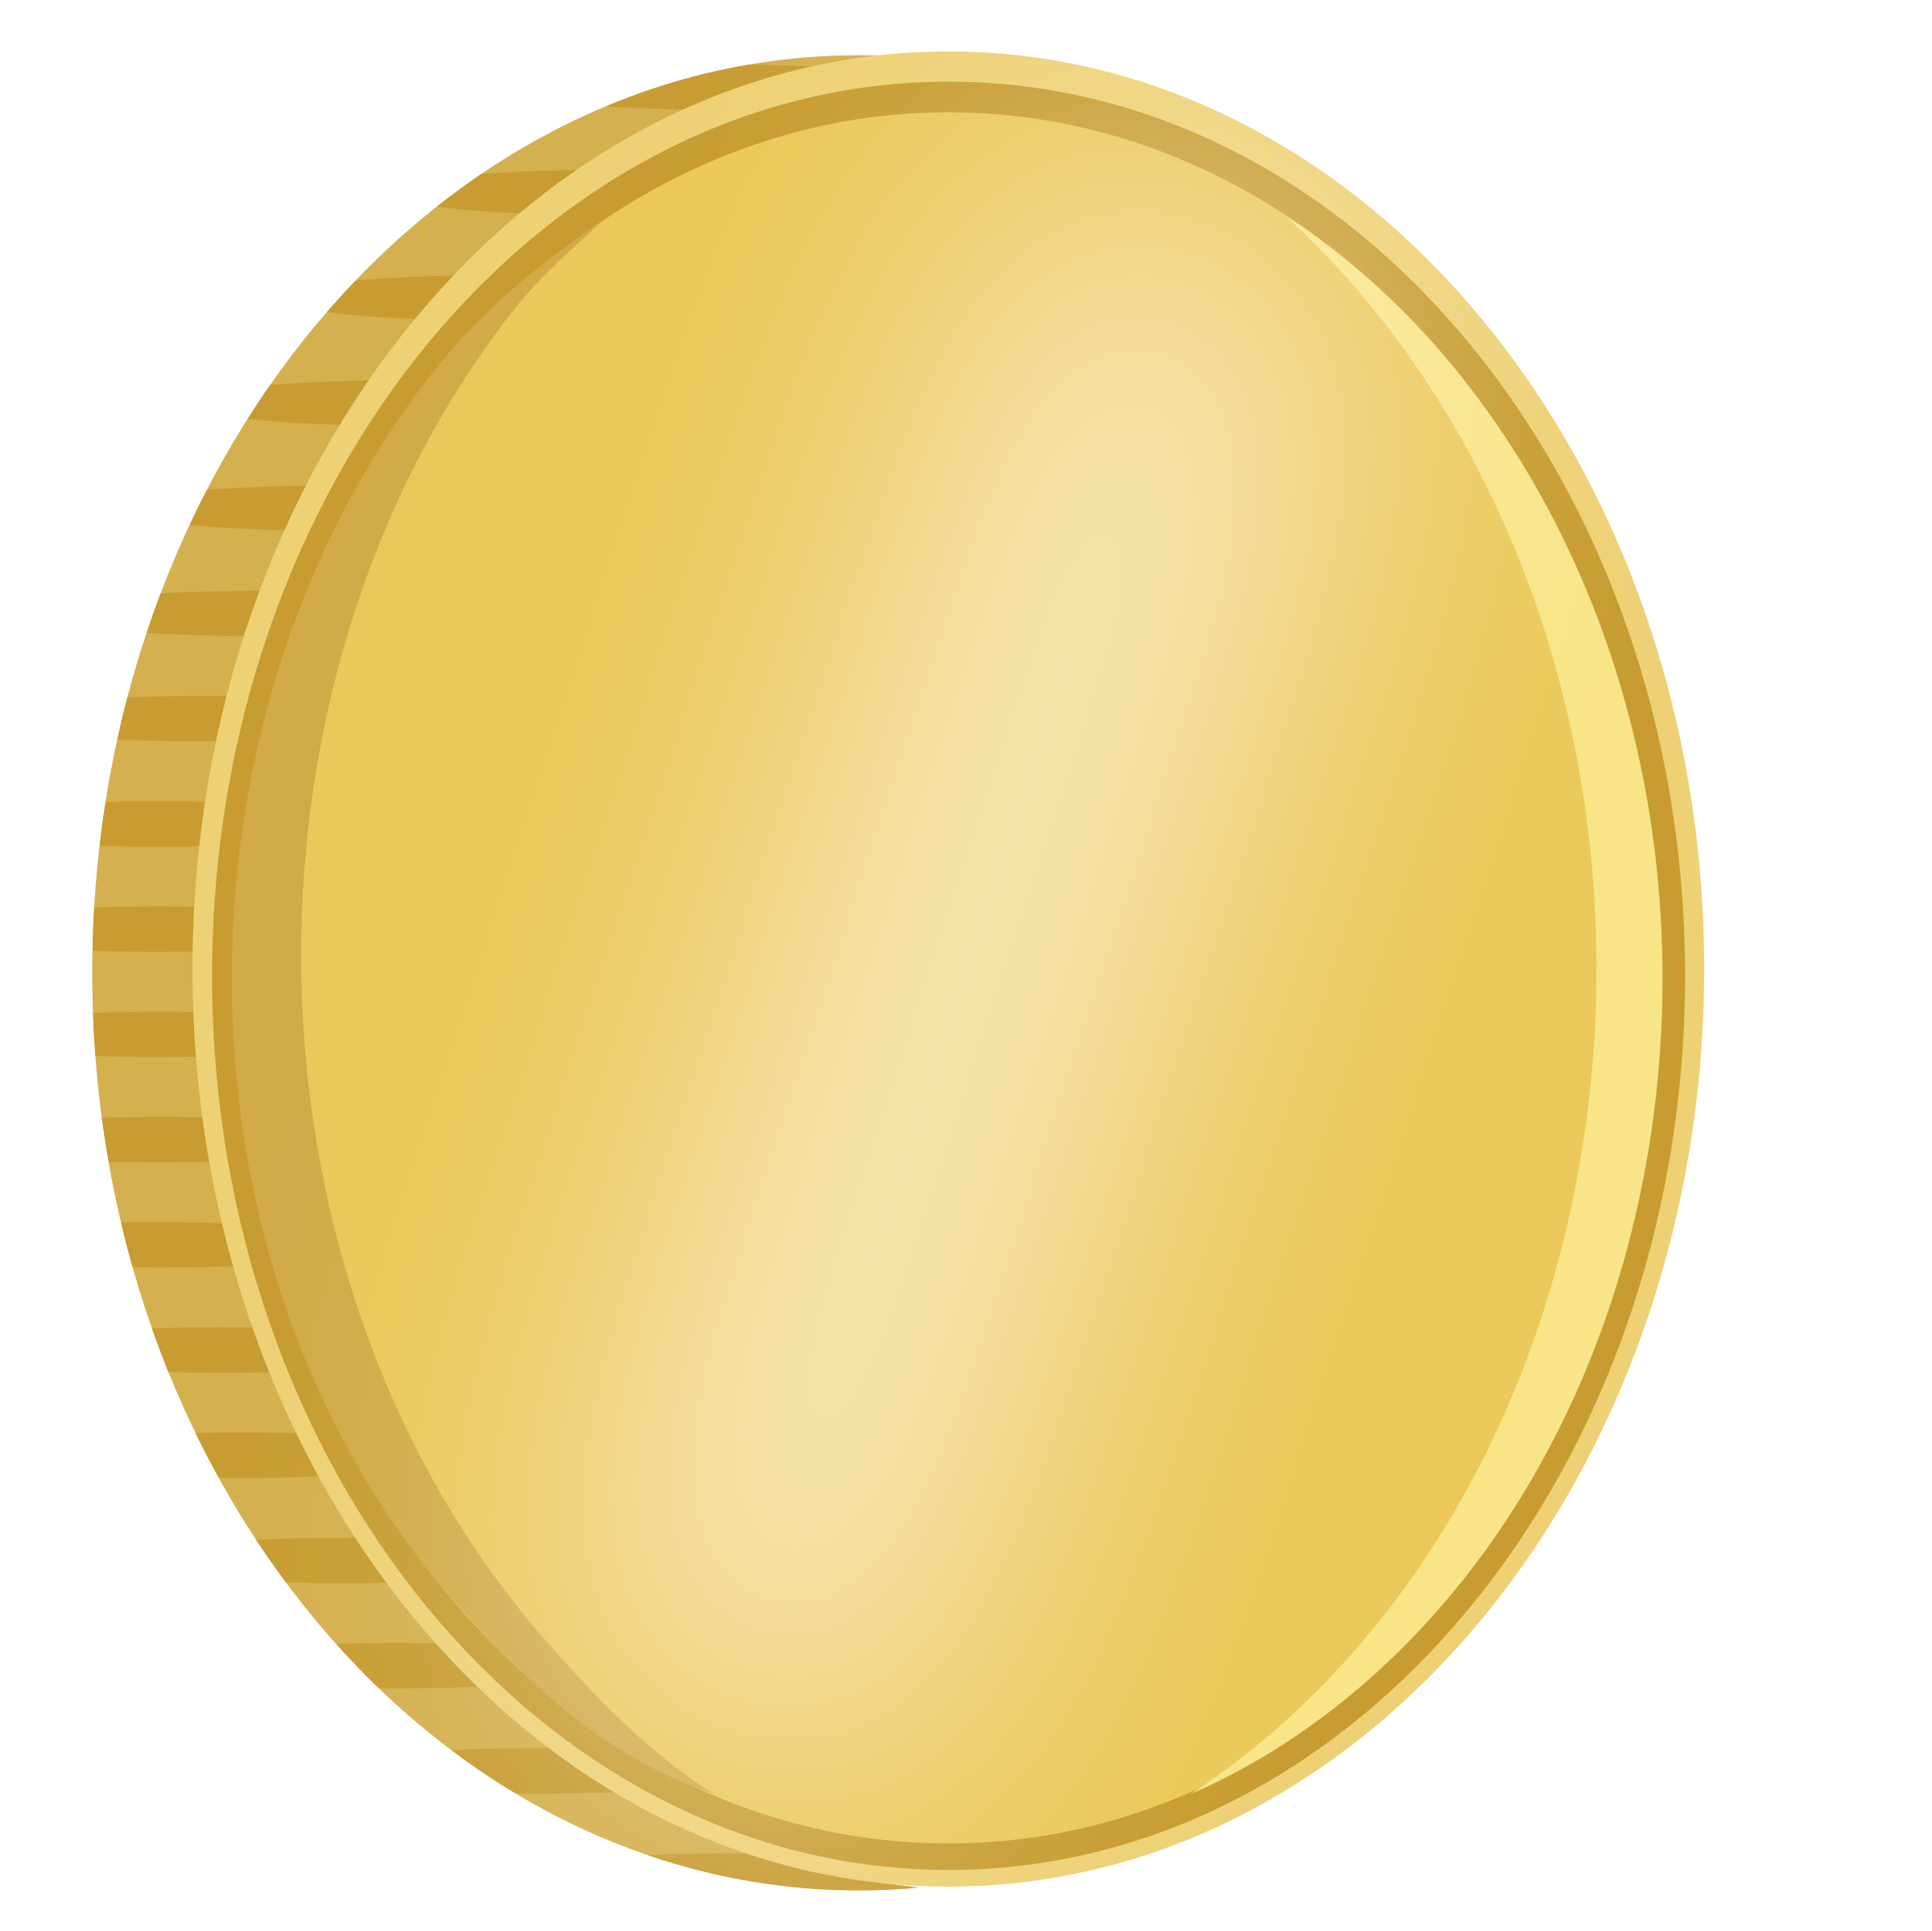 freeuse download Coin border png transparent. Gold clipart pure gold